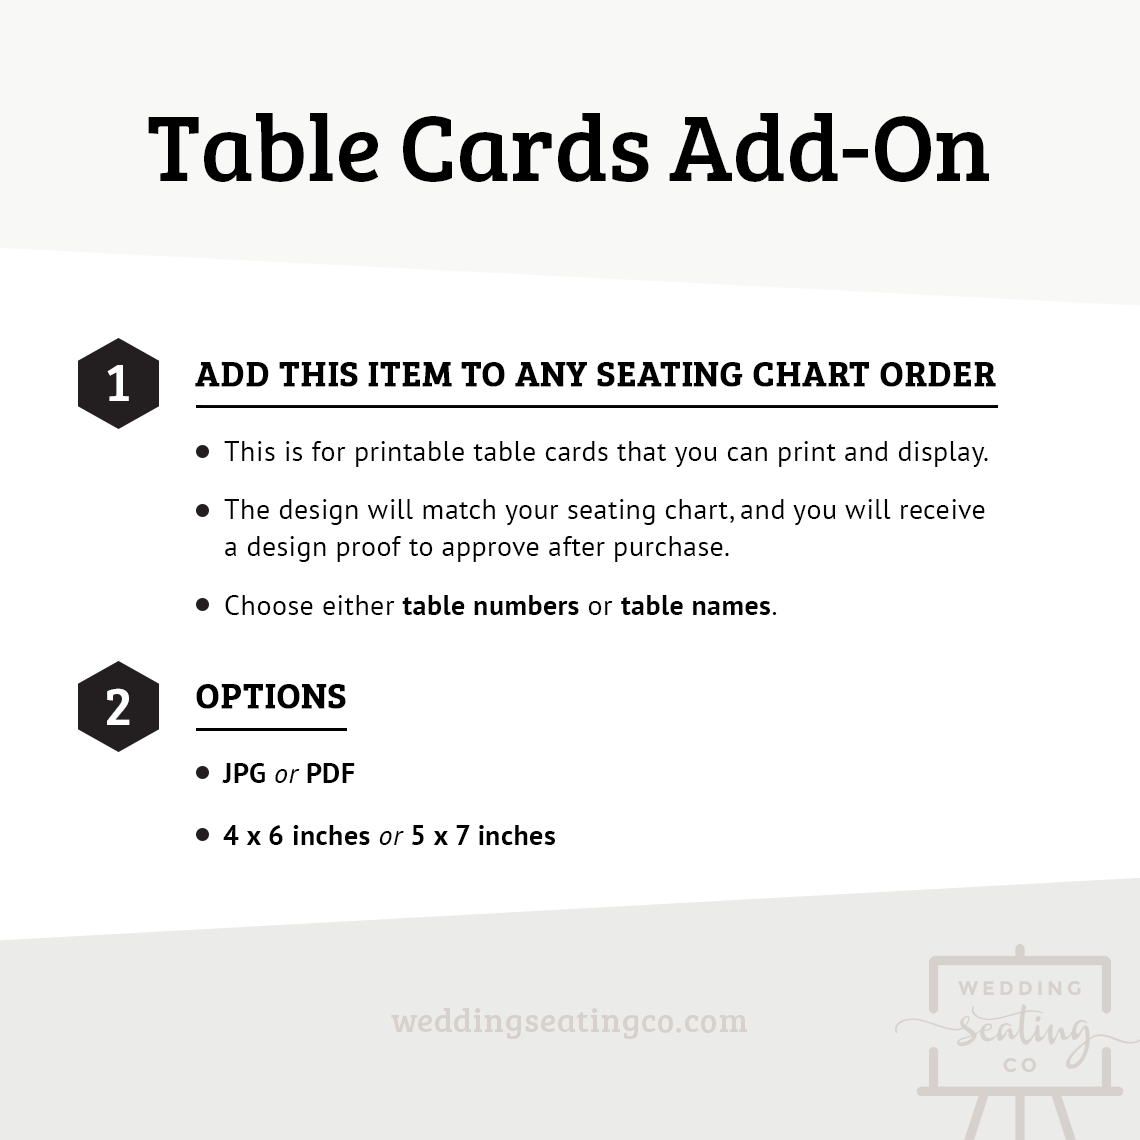 Add On Table Cards